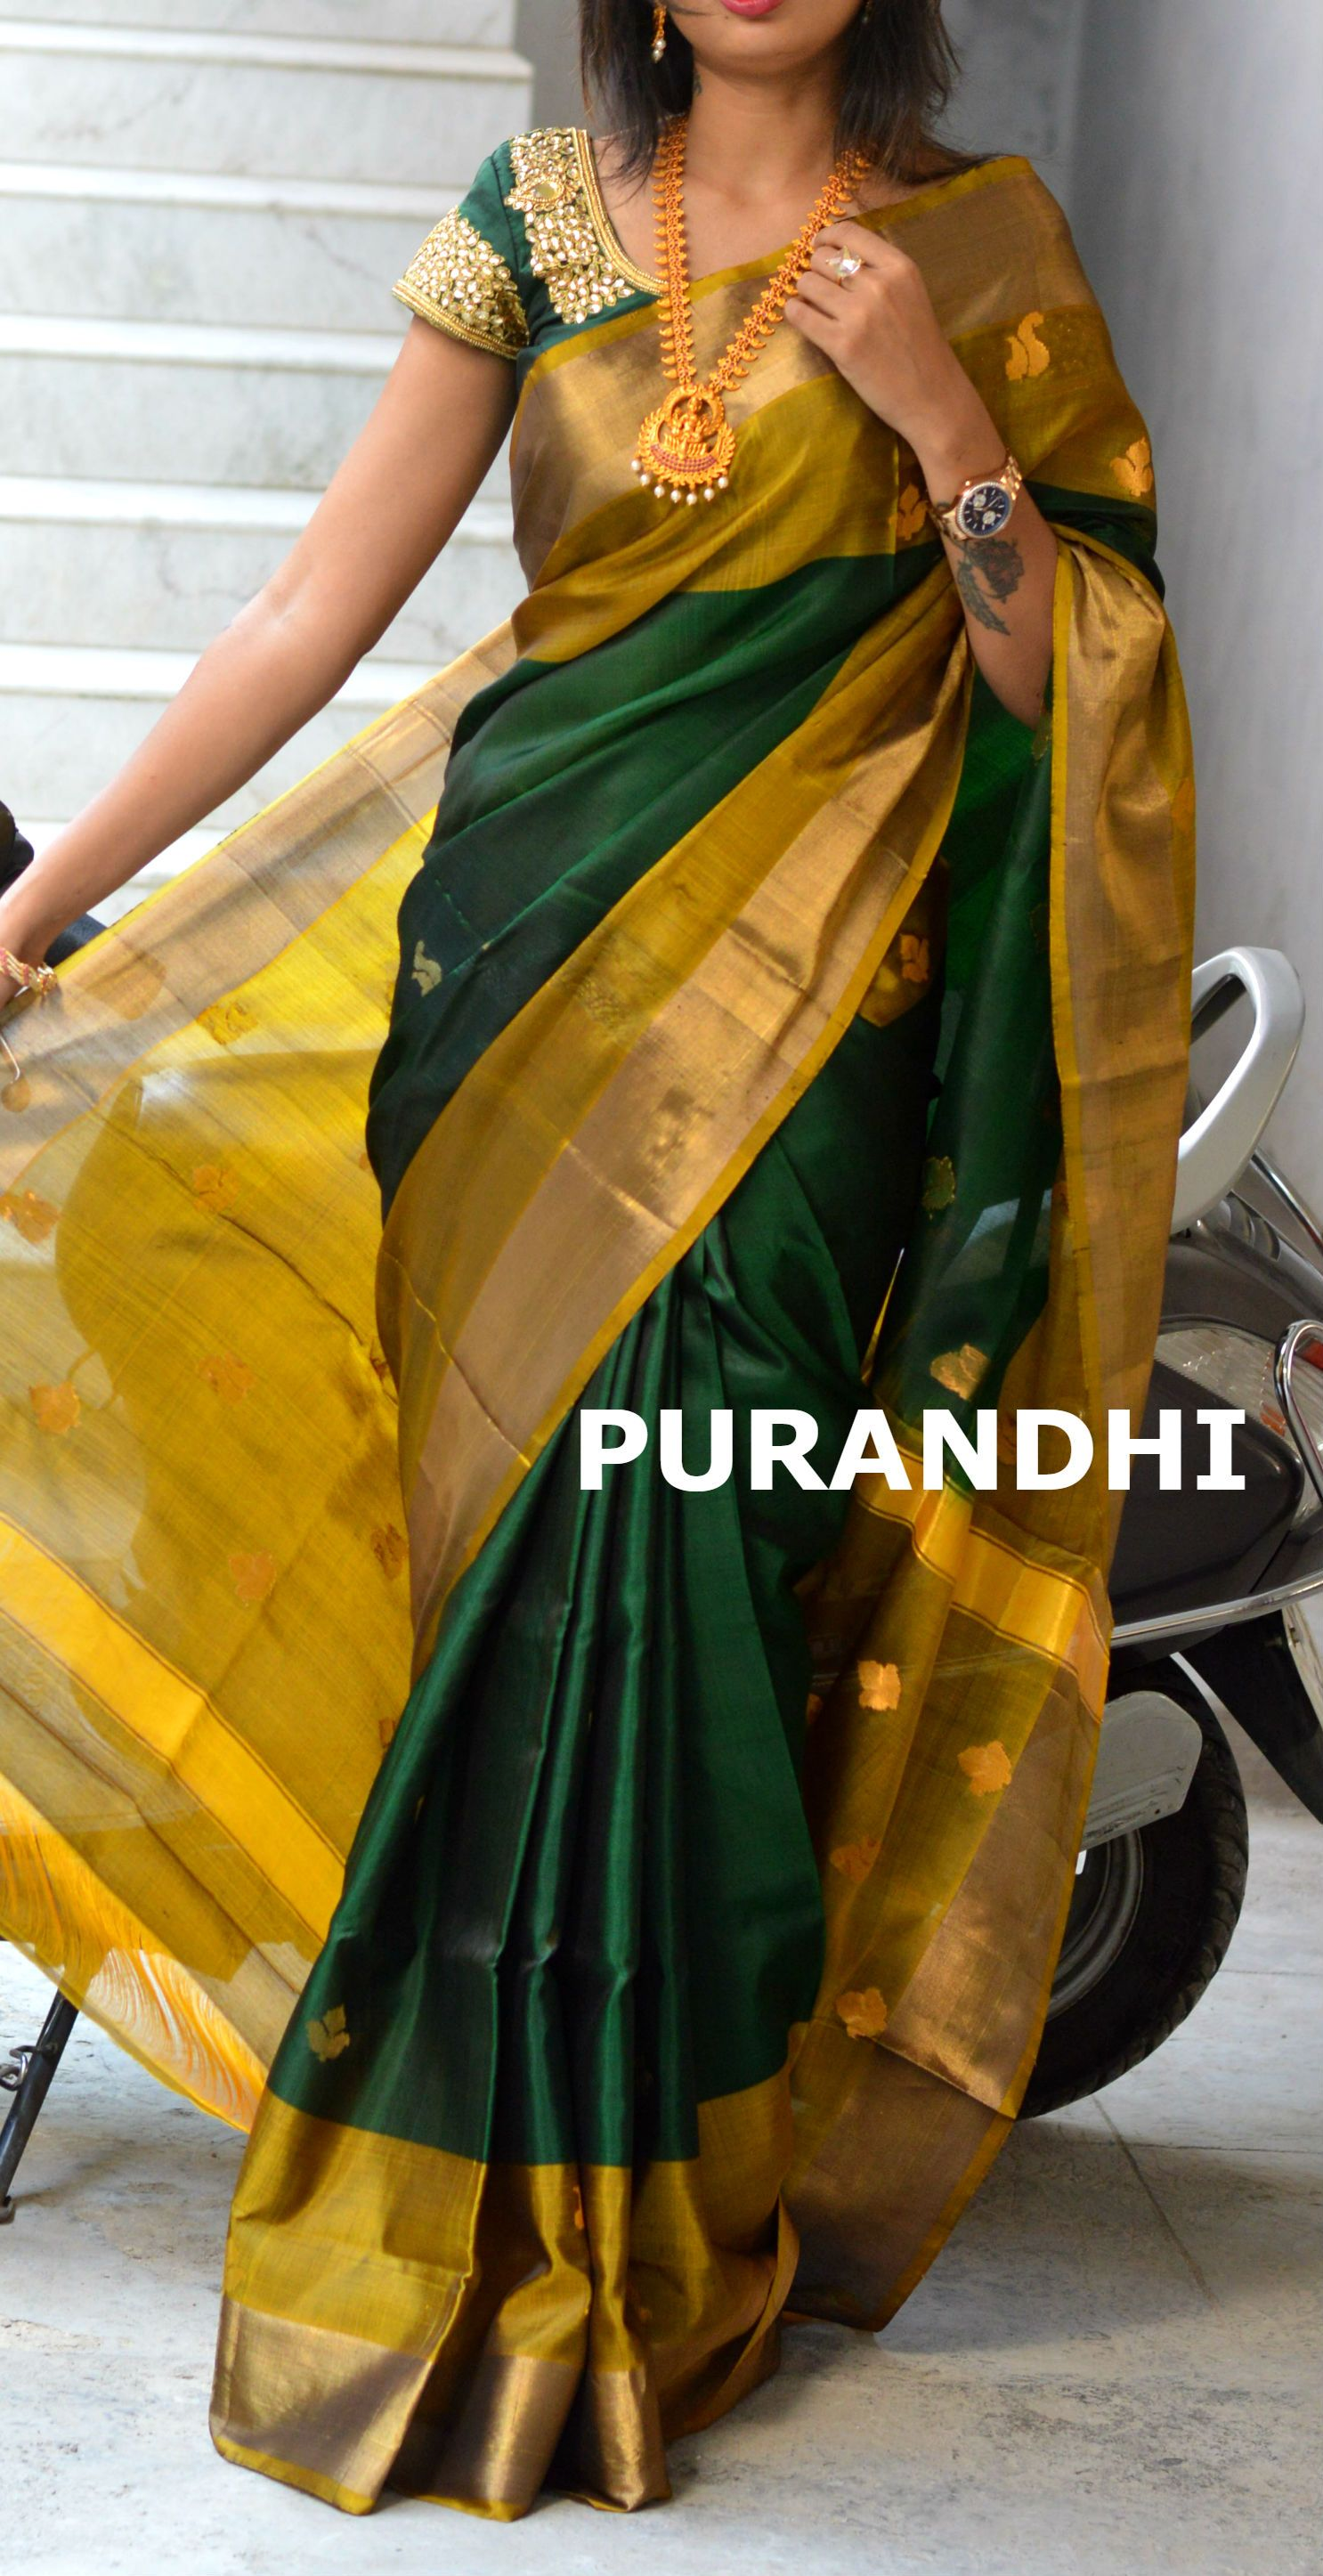 b9889641b99109 Bottle Green uppada pattu saree